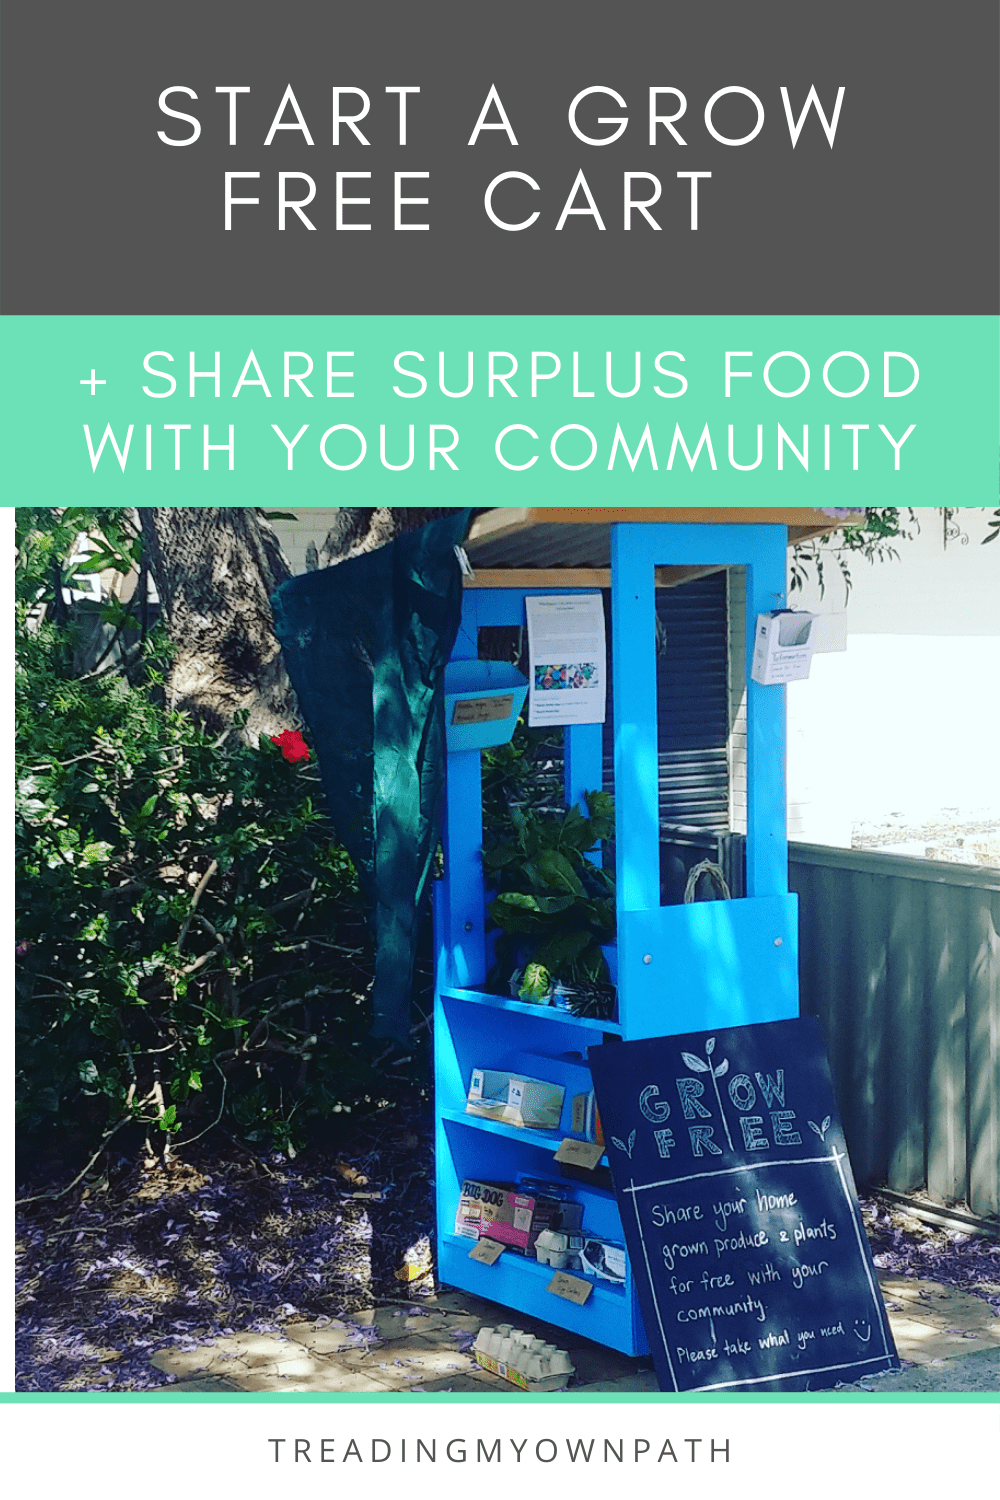 How to start a Grow Free Cart (+ share surplus produce with your community)